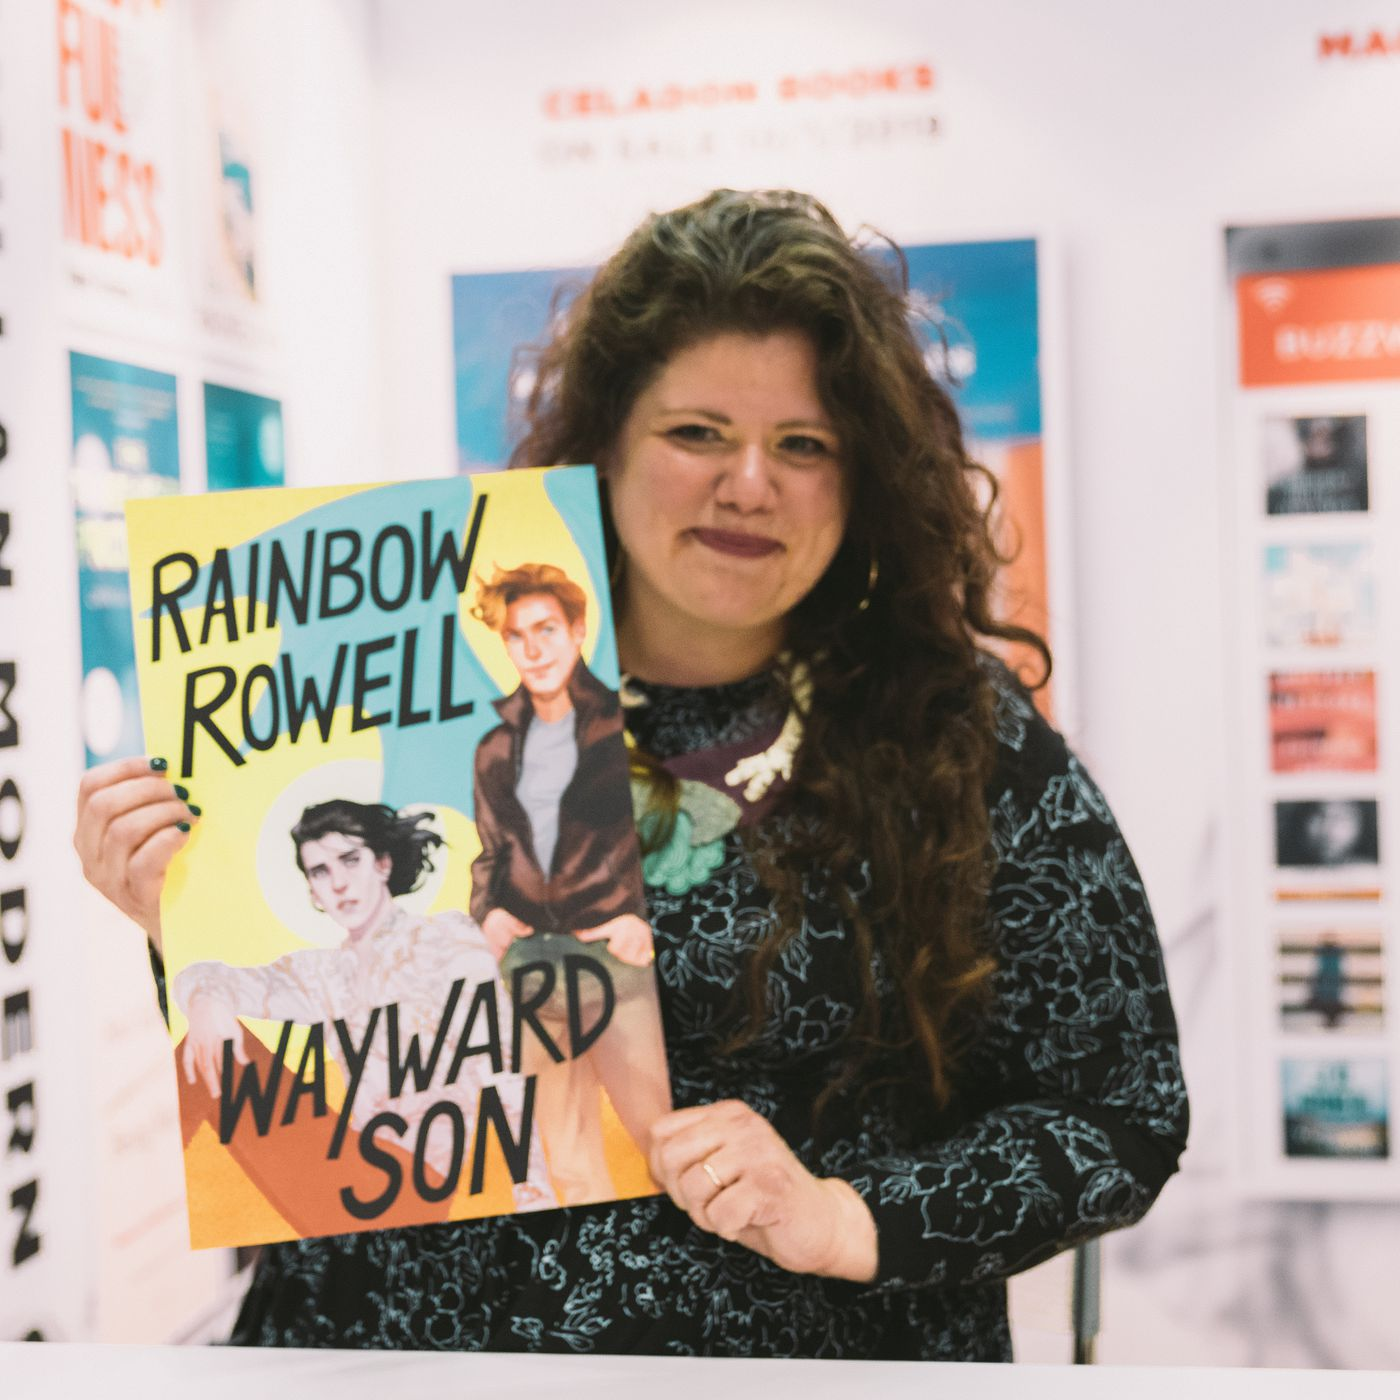 Rainbow Rowell interview: Rowell talks Wayward Son at BookCon - Vox